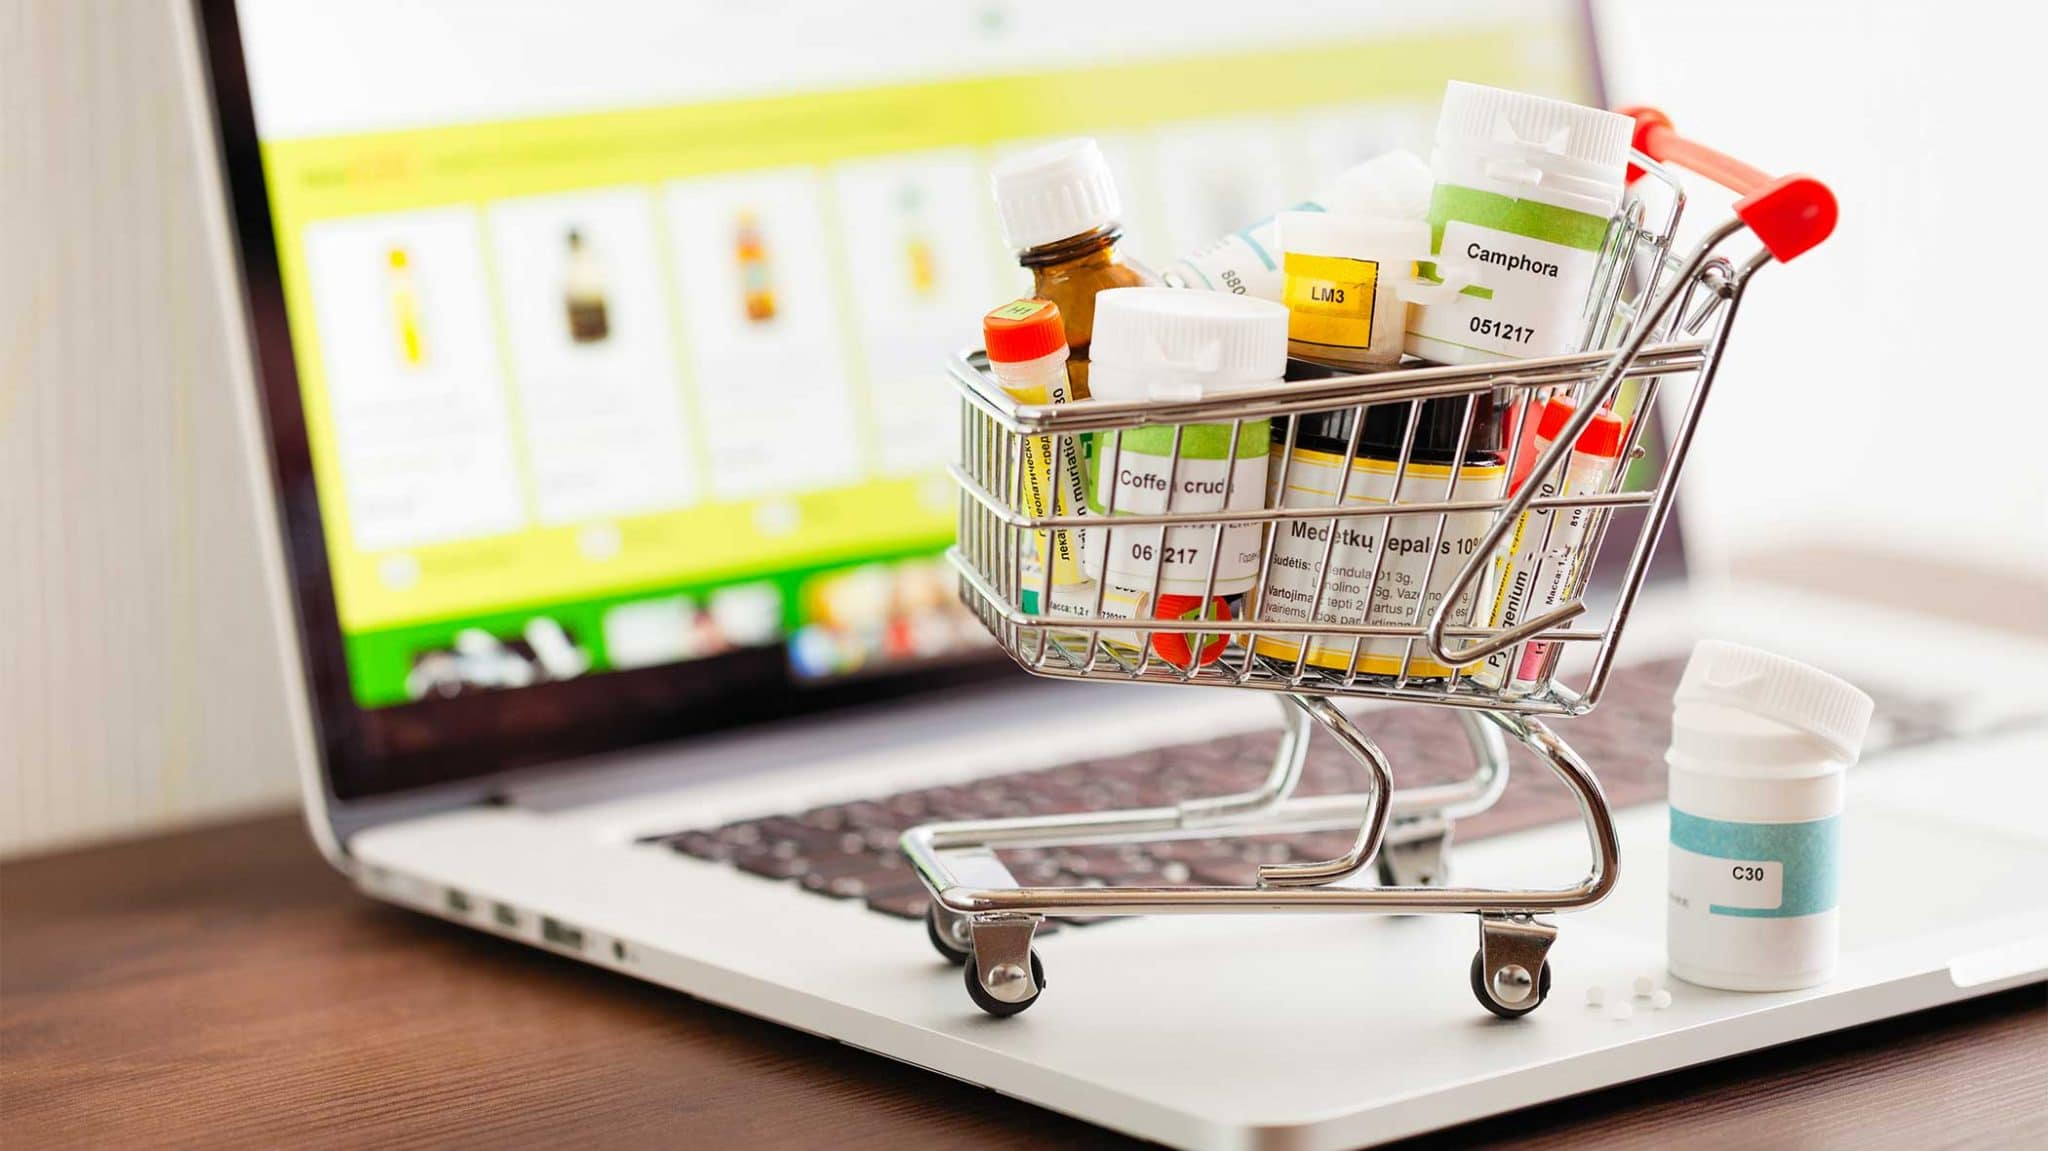 Online Pharmacies | Safety, Legality, & Warnings